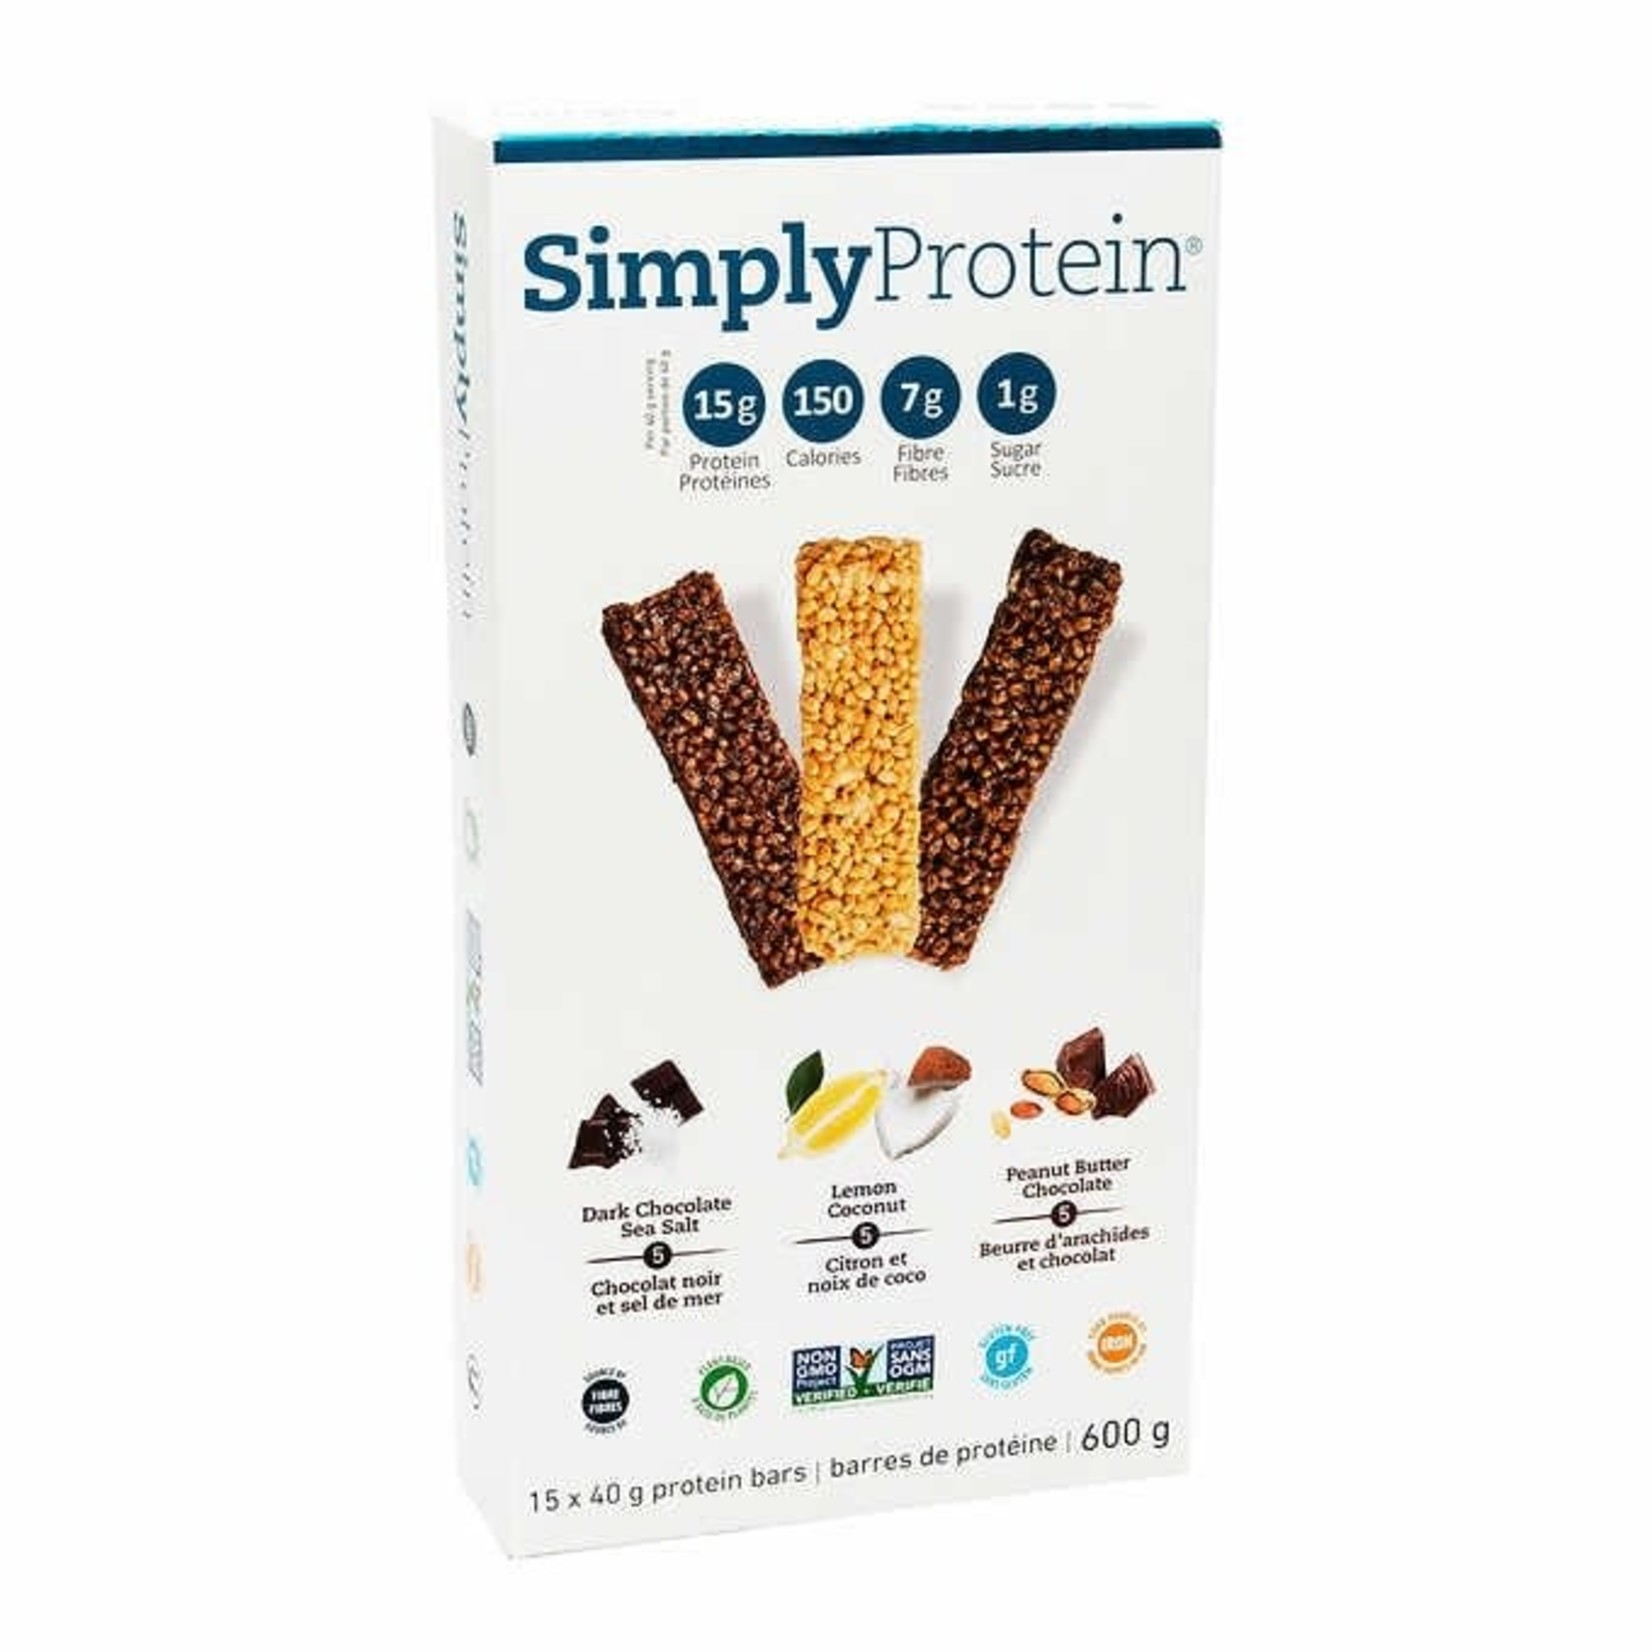 Simply Protein bars -Variety 15 Pack